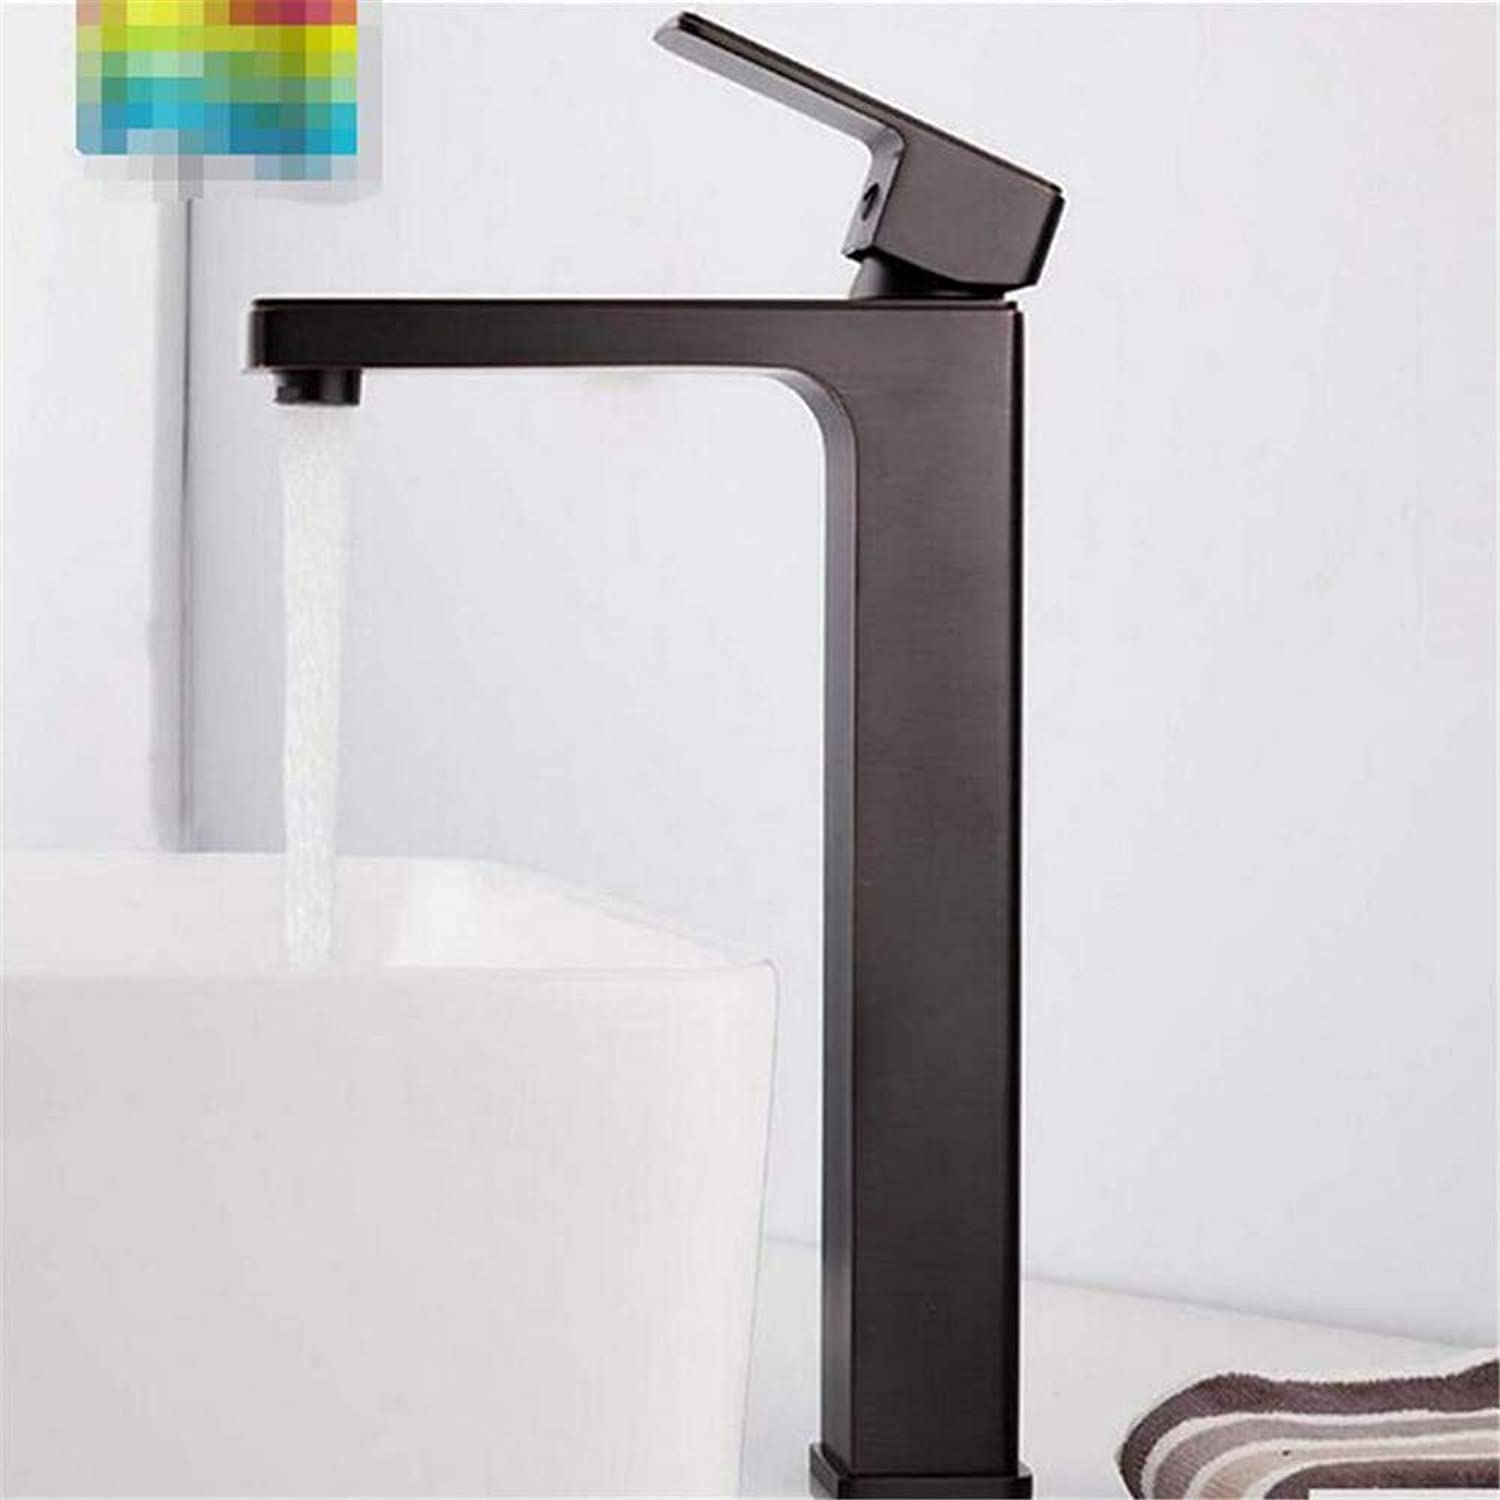 Faucet Hot and Cold Water Brass Chrome Sink Faucet Mixer Tap Deck Mounted Bathroom Mixer Bath Sink Taps